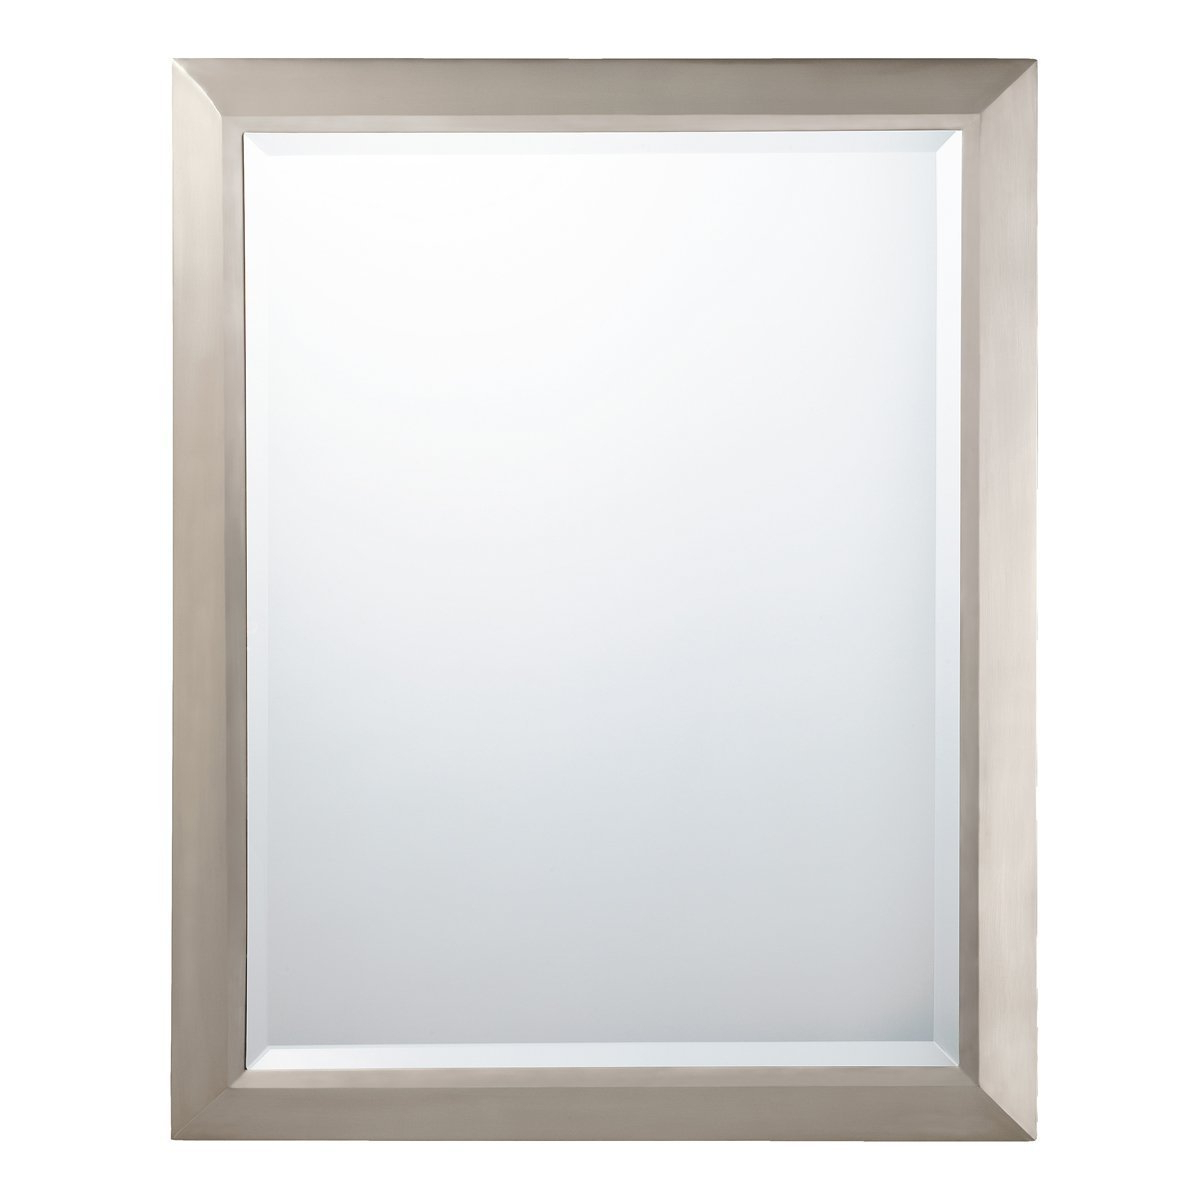 "Elevate Wall Mirrors Inside Preferred Kichler Lighting 41011Ni Rectangular Wall Mirror Brushed Nickel, 24"" W X 30"" H, (View 16 of 20)"